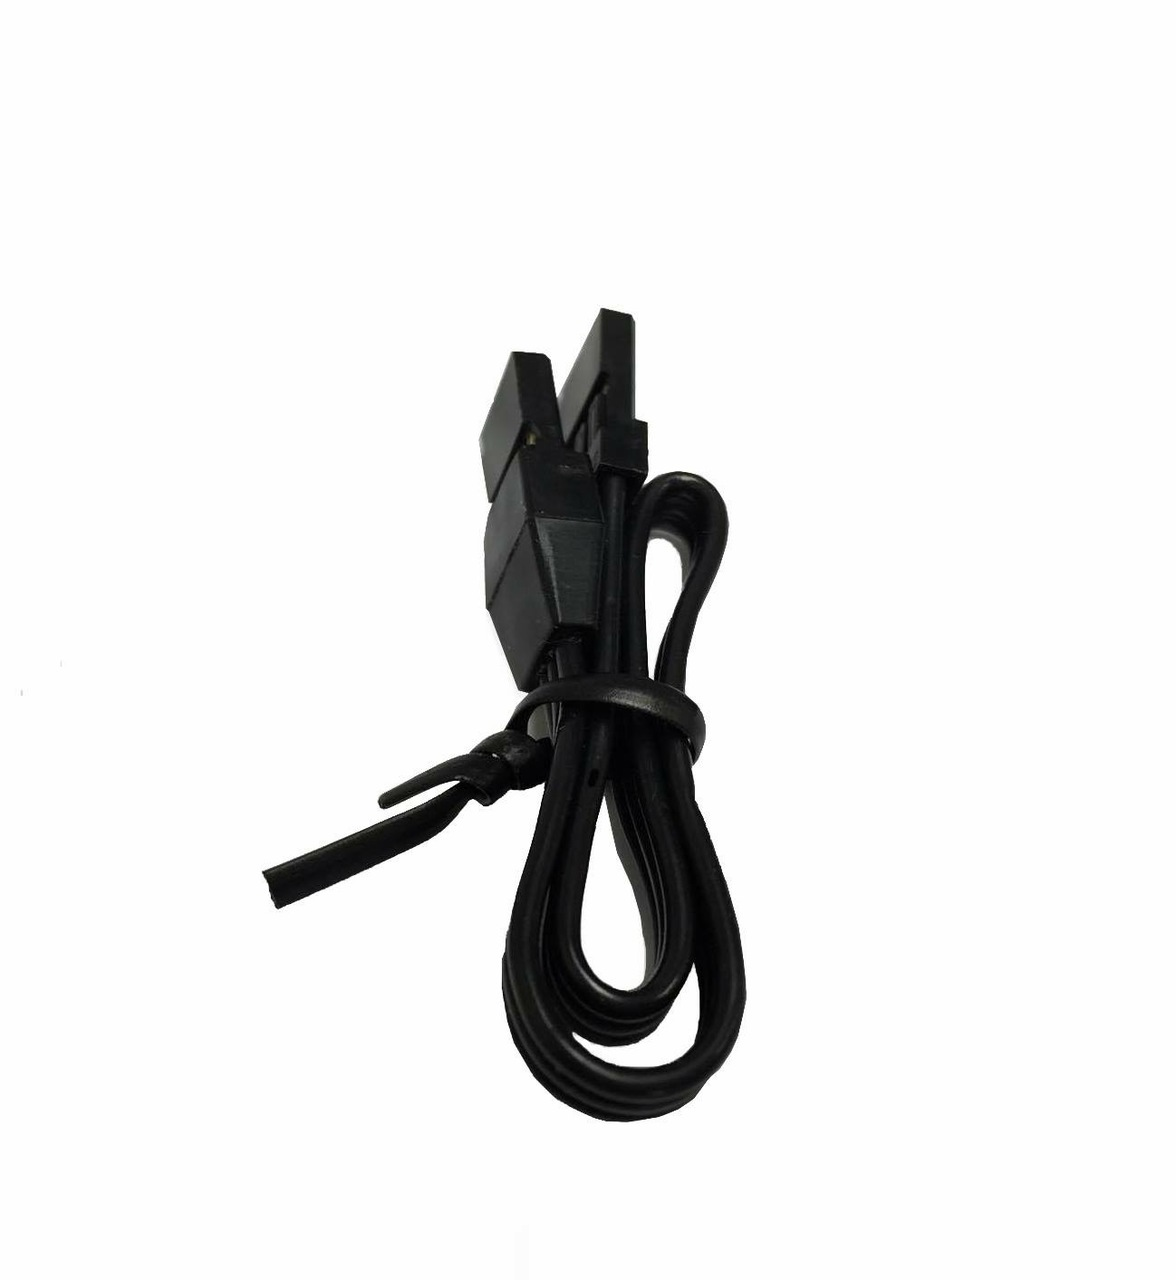 XPERT R1/R2 SERIES QUICK RELEASE CABLE (15CM)